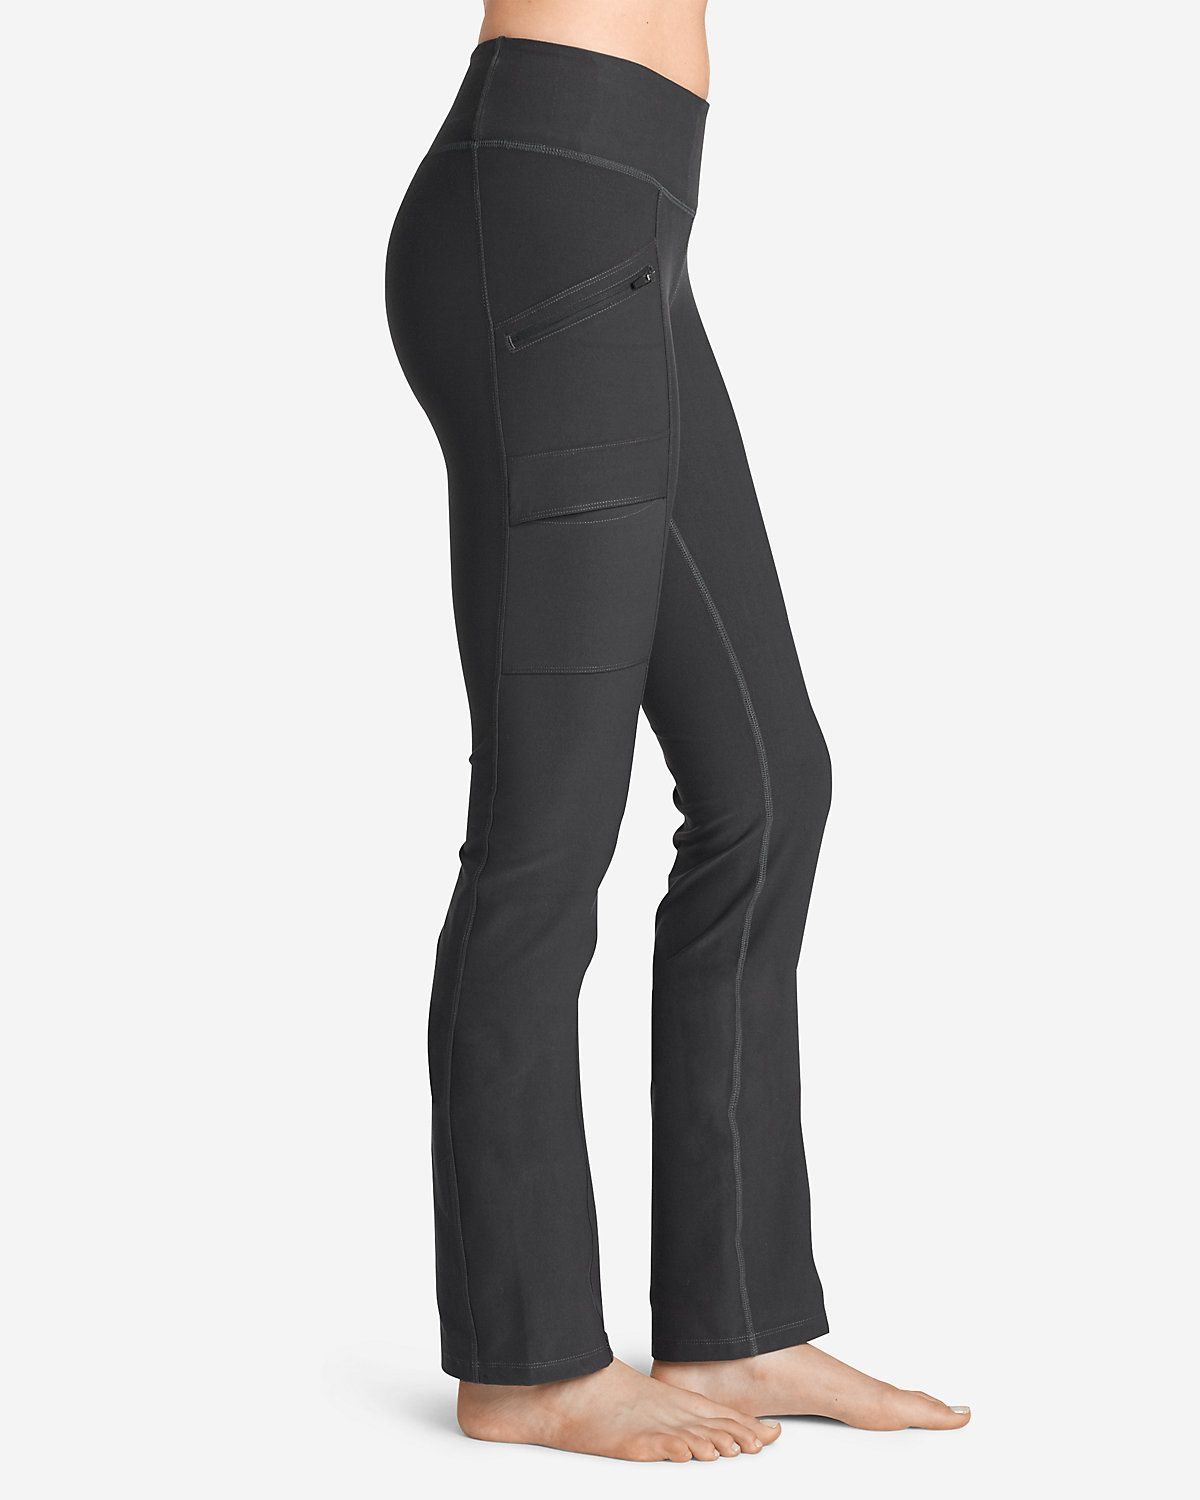 7f7fa26ee588a Women's Trail Tight Pants | Outdoor Gear | Pants, Tights, Cargo Pants